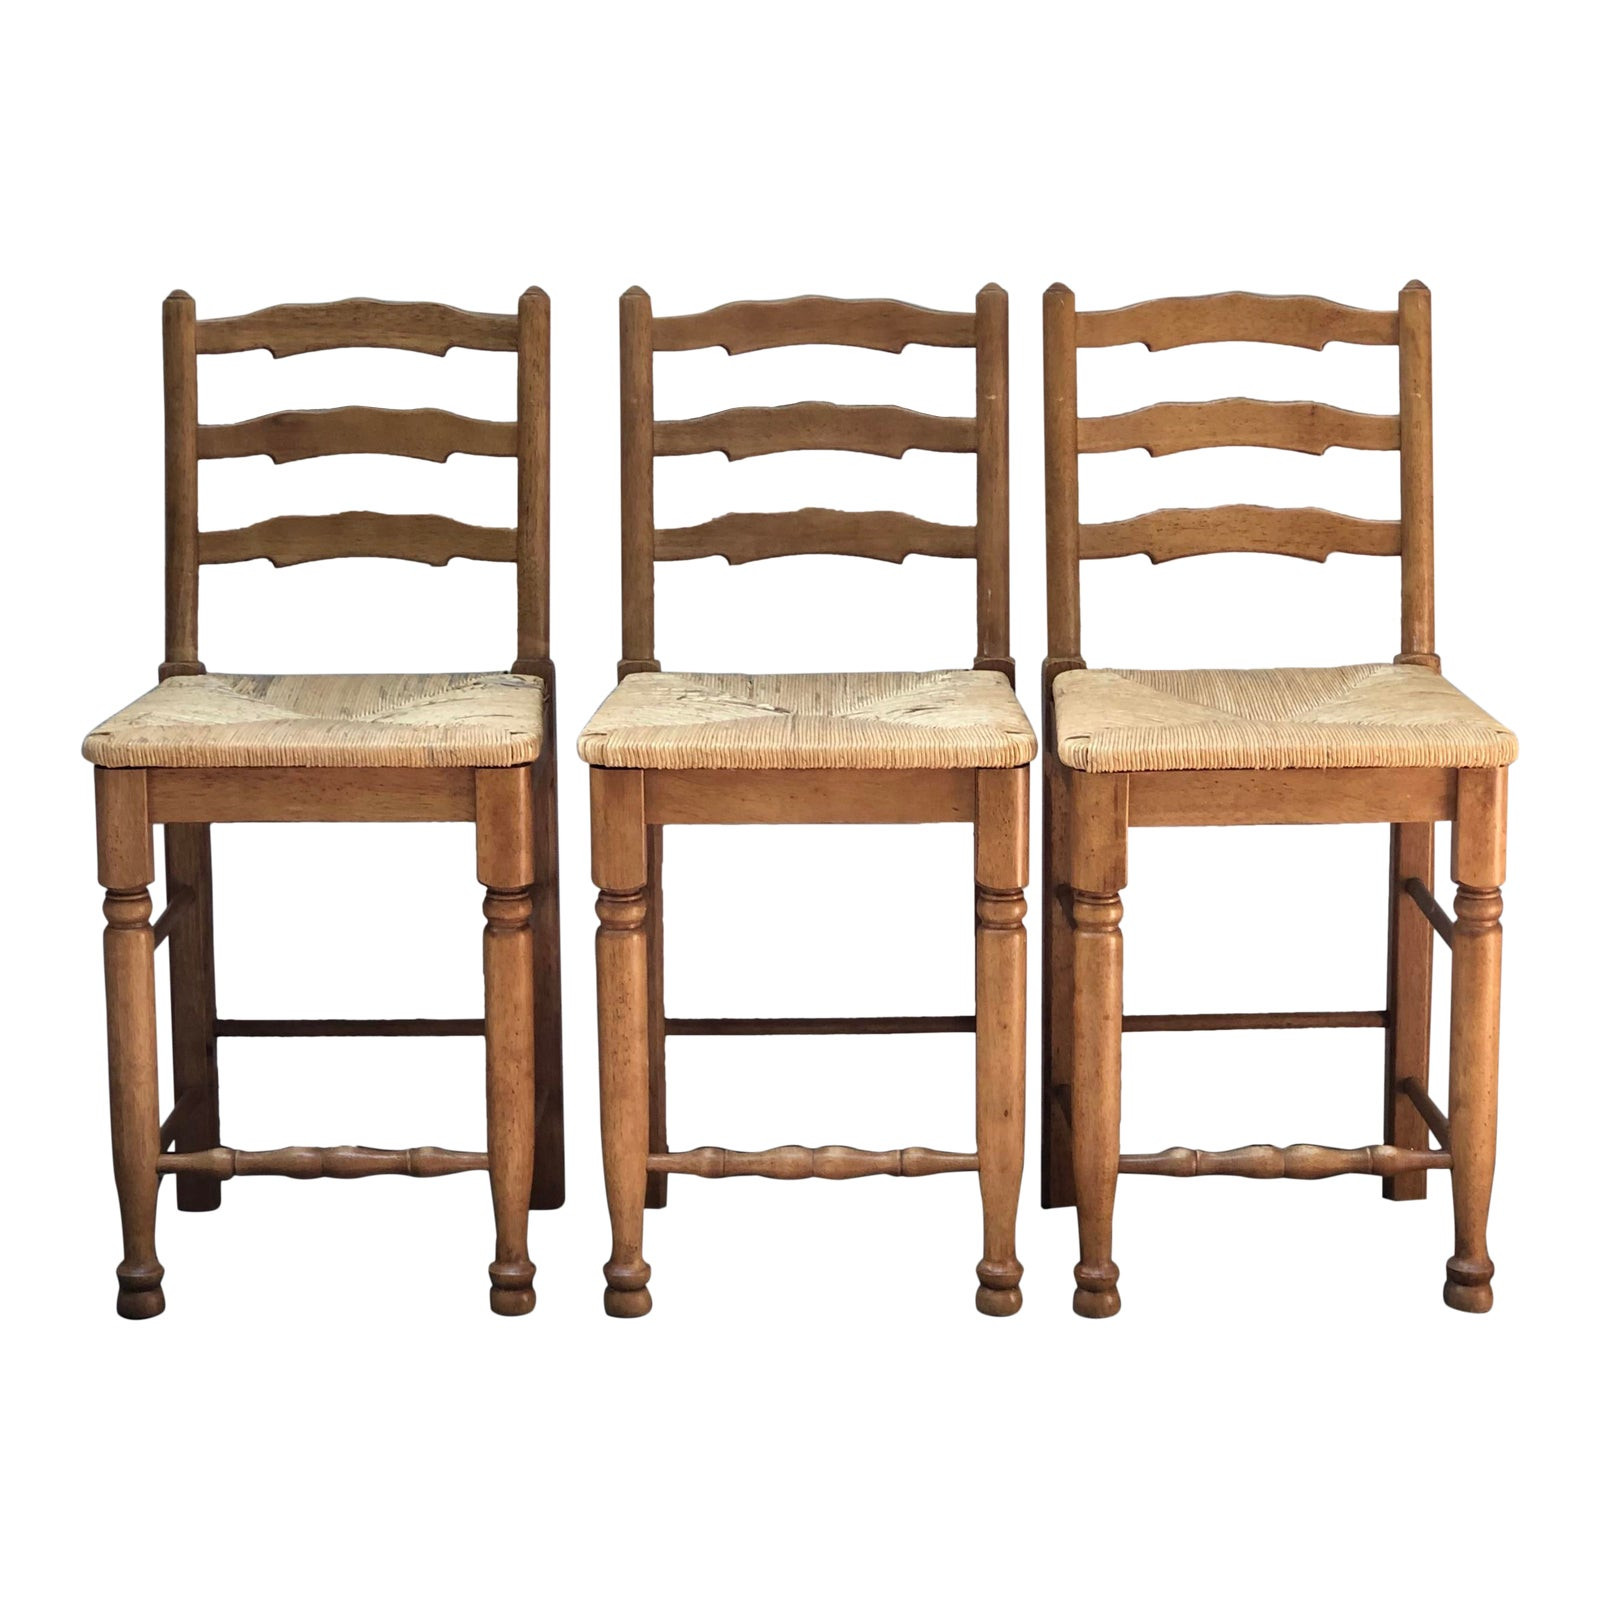 Late 20th Century Ladder Back Seat Counter Stools